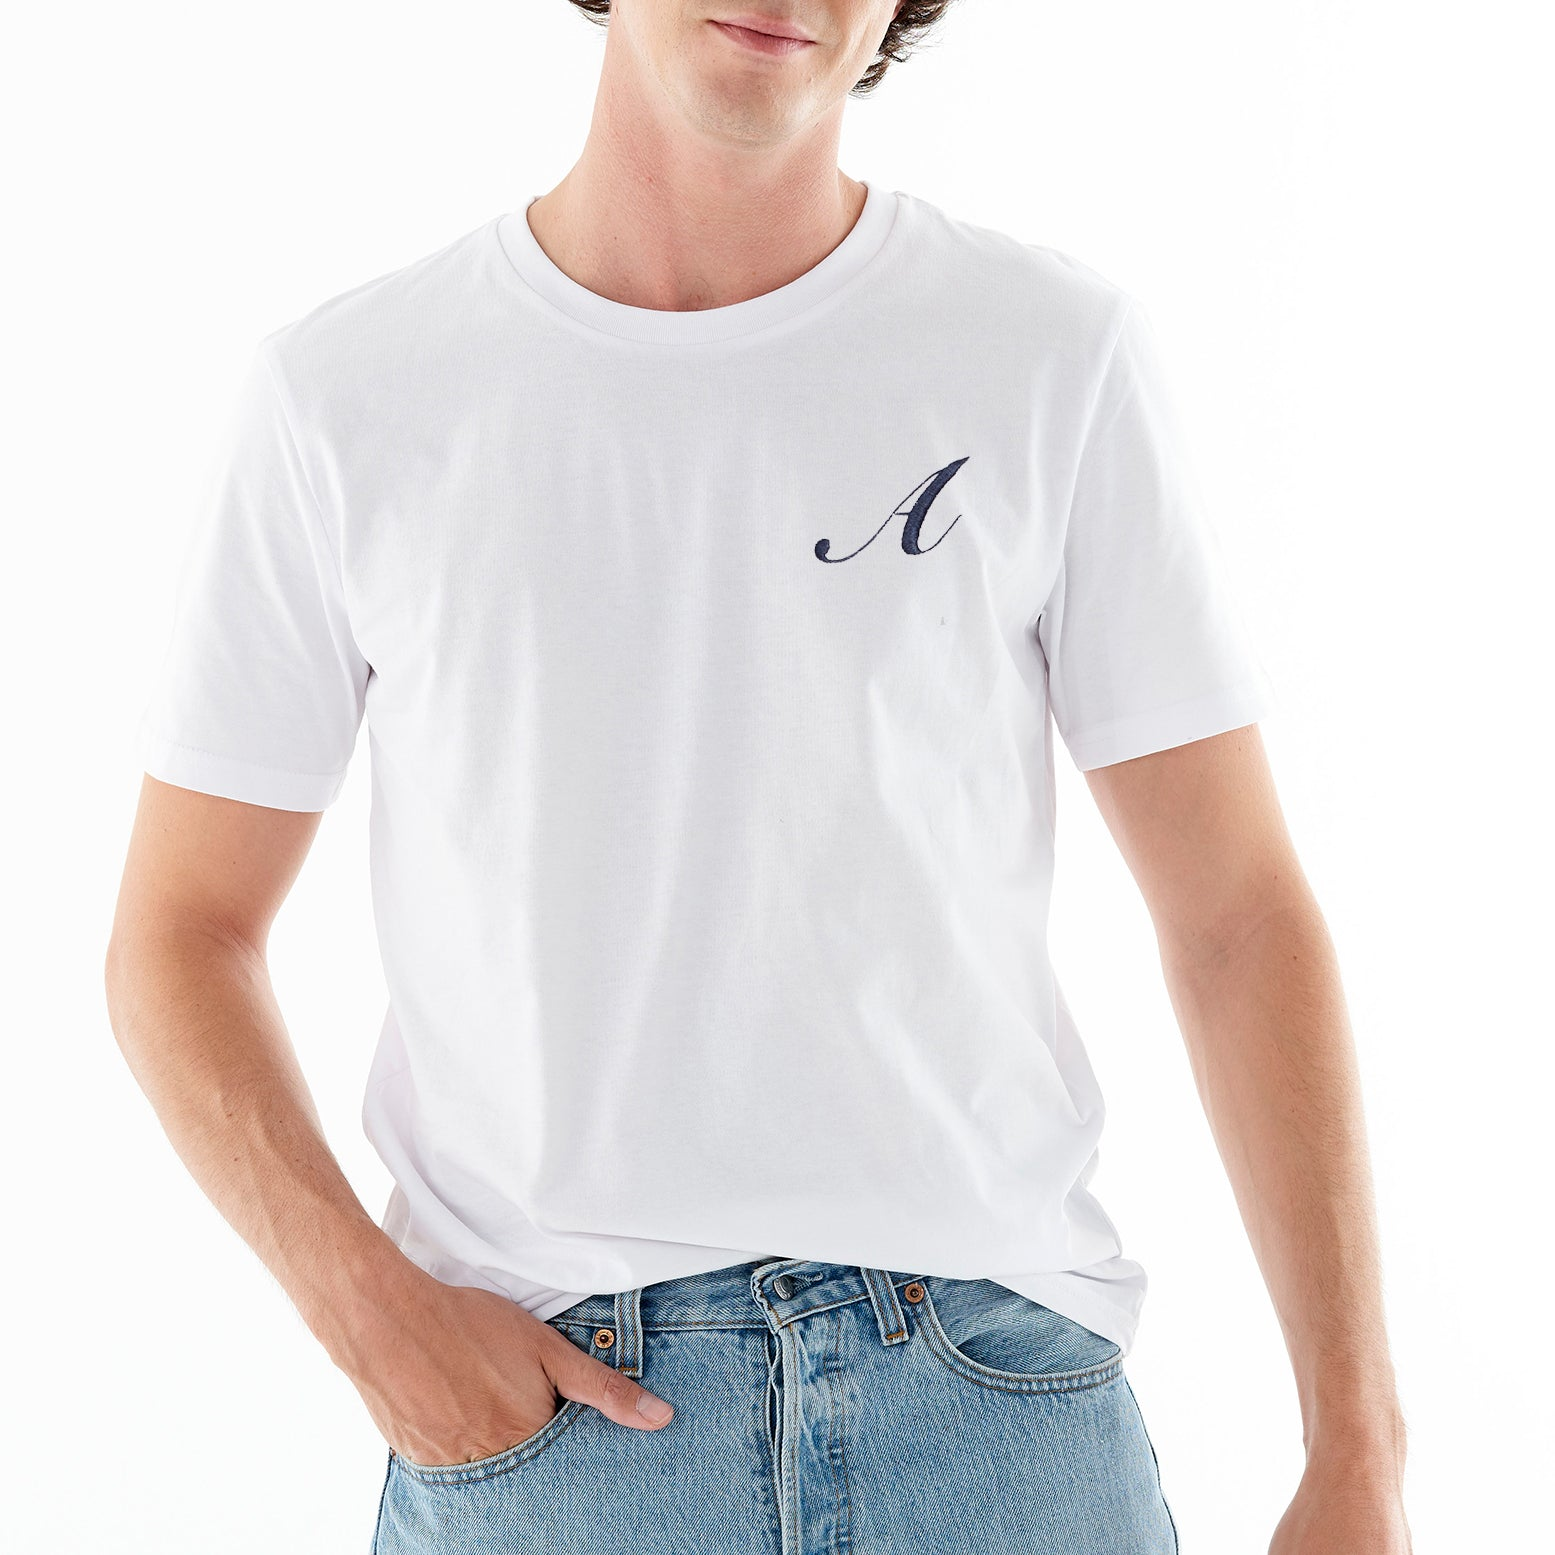 Personalized ANCLADEMAR White T-Shirt